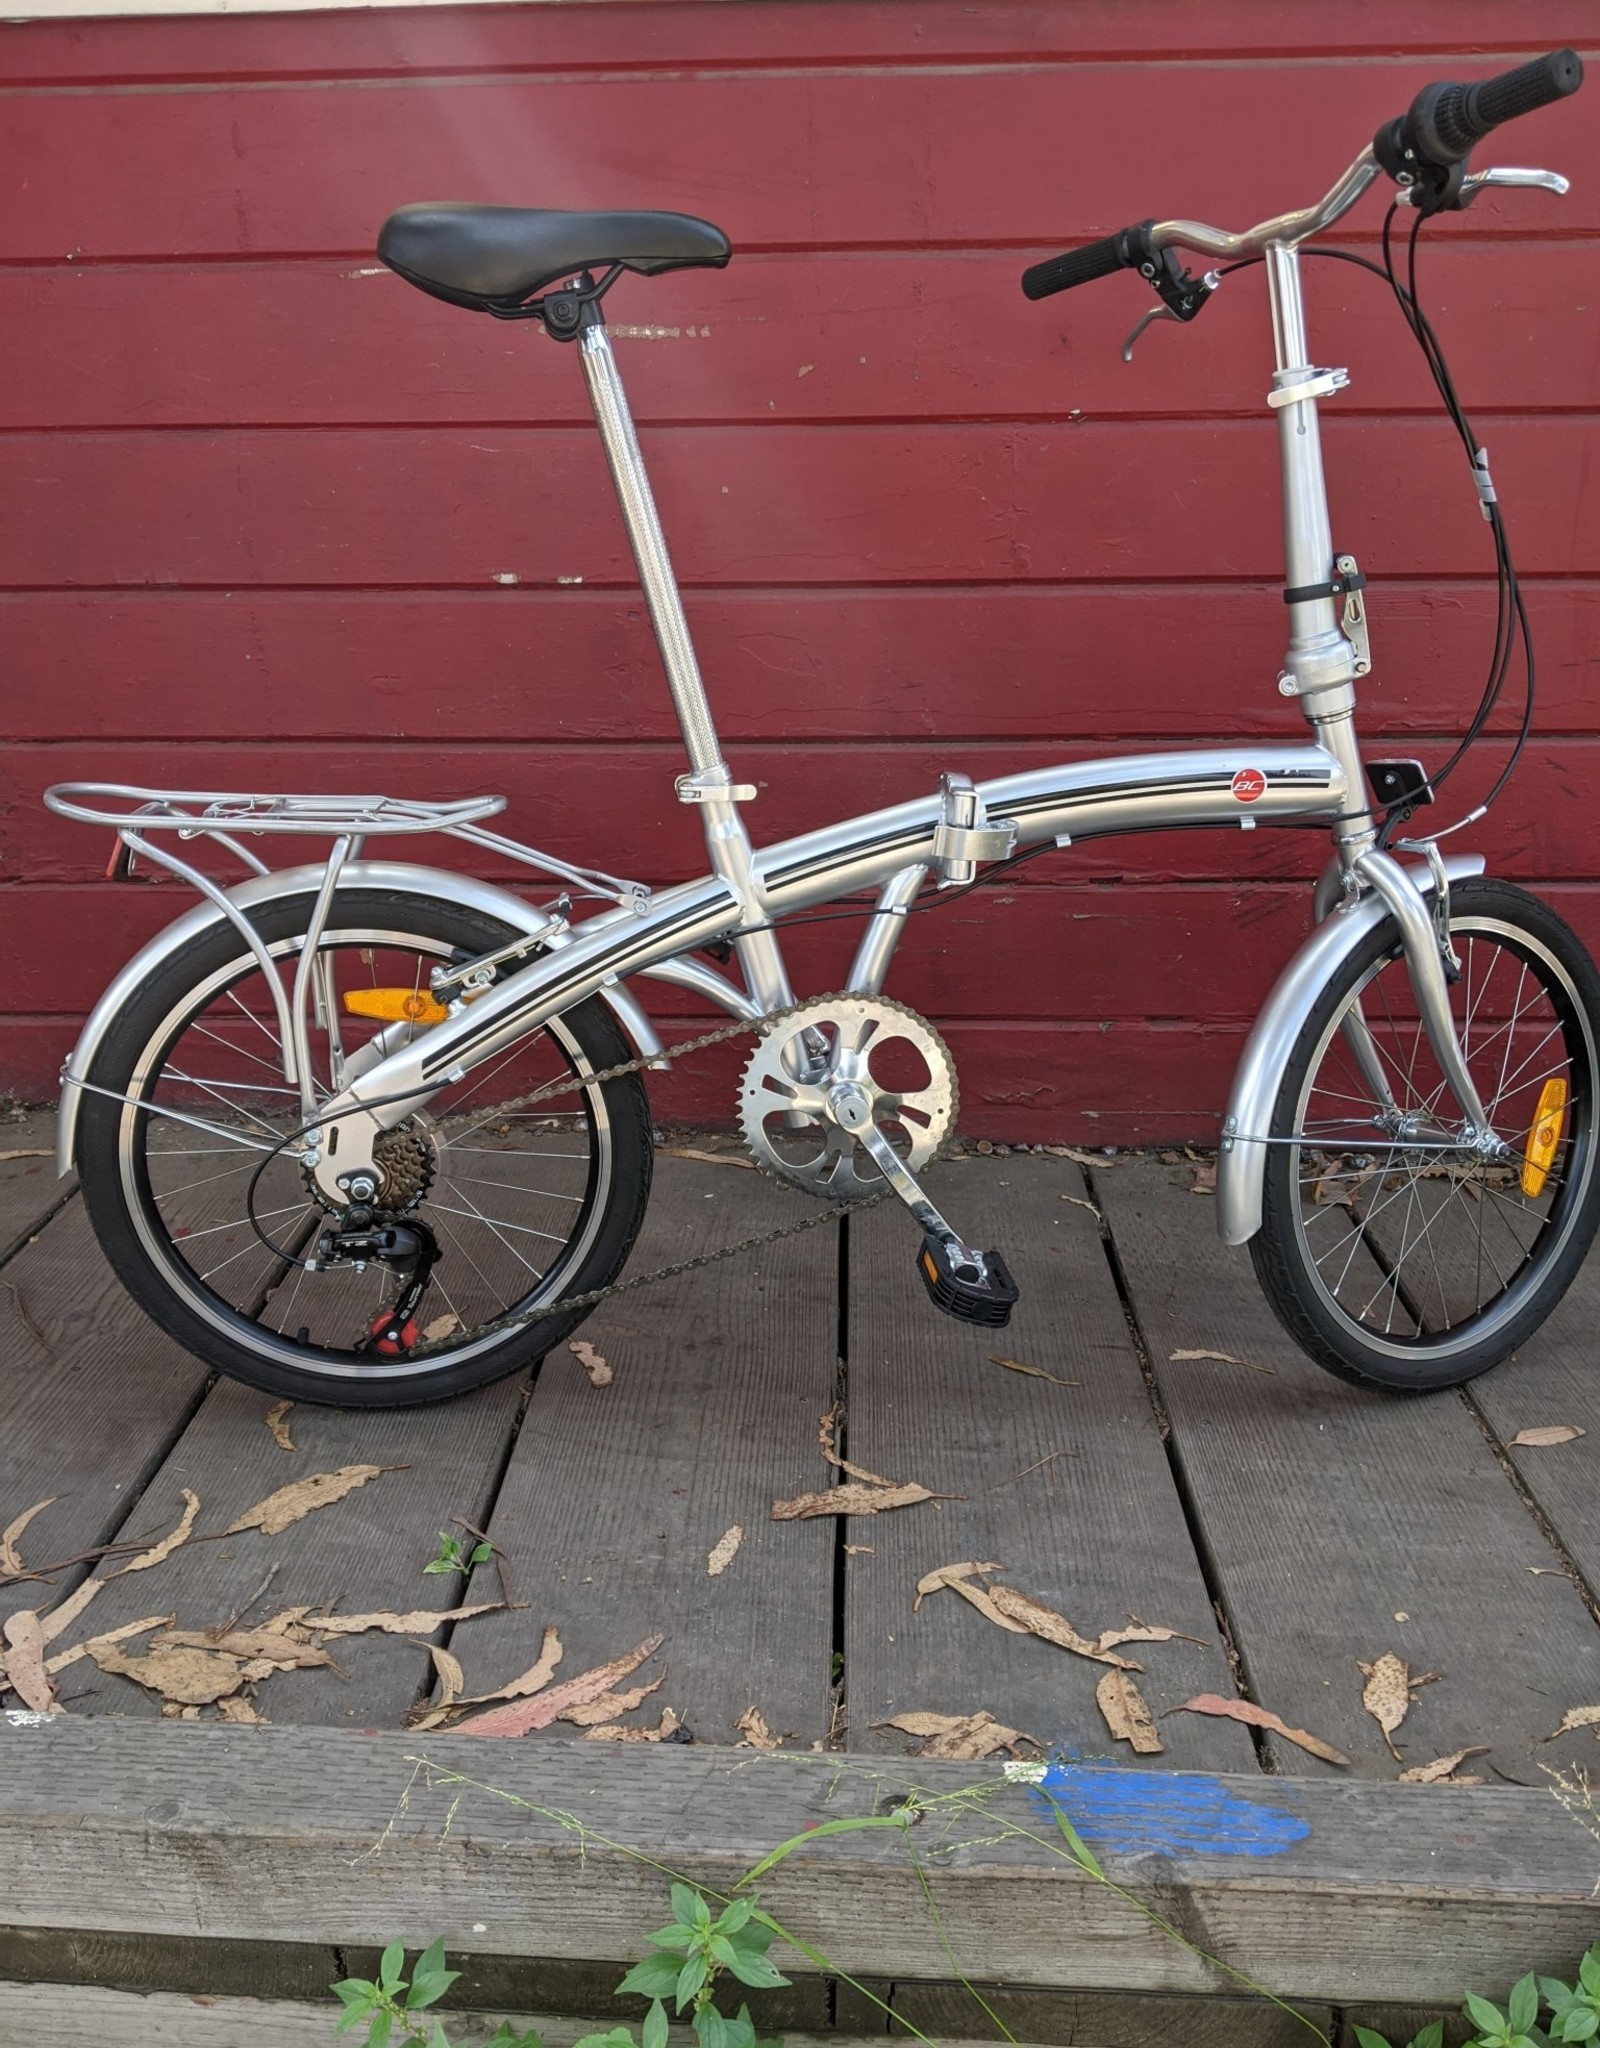 BC folding bike, one size fits most